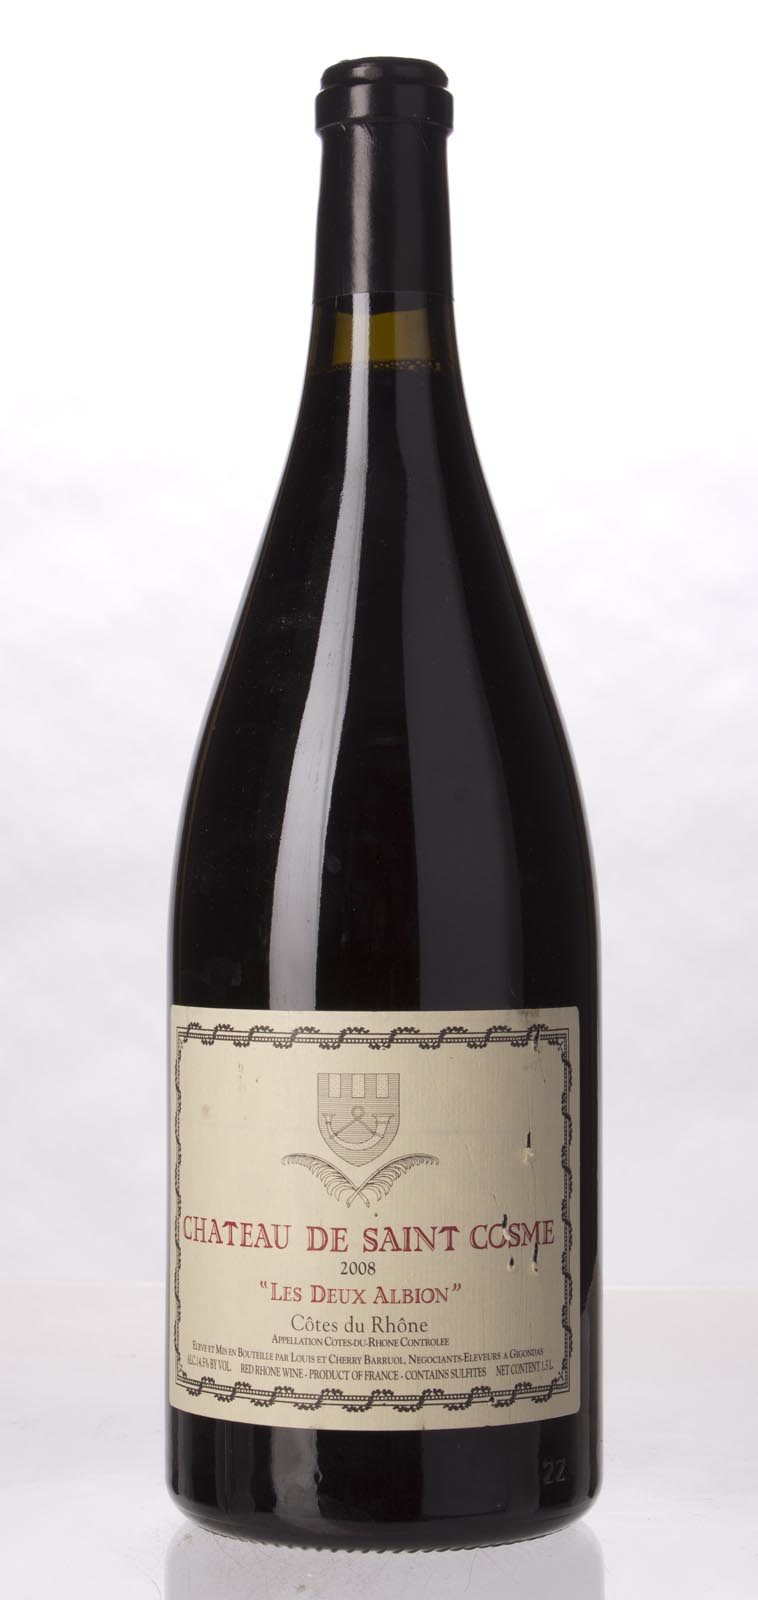 Chateau de Saint Cosme Cotes du Rhone les Deux Albions 2008, 1.5L (WA90) from The BPW - Merchants of rare and fine wines.